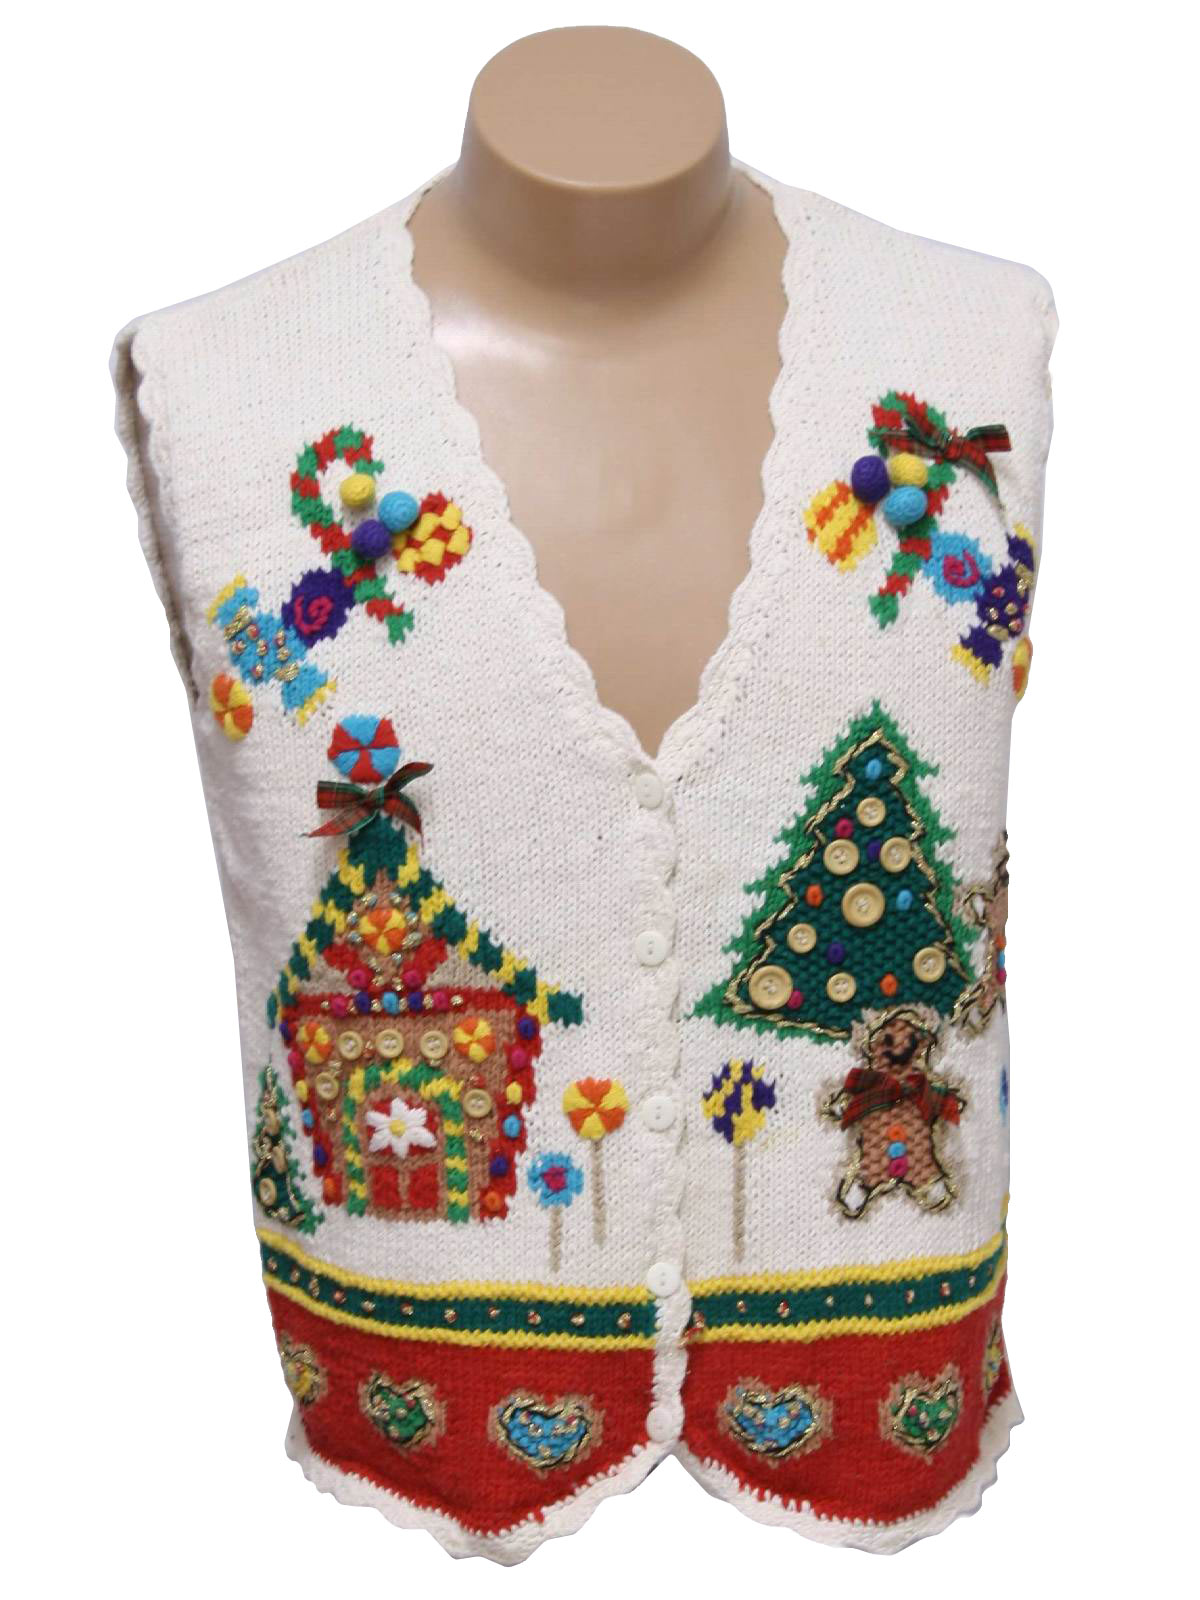 Christmas sweater vest v neckline with candy candy canes a ginger